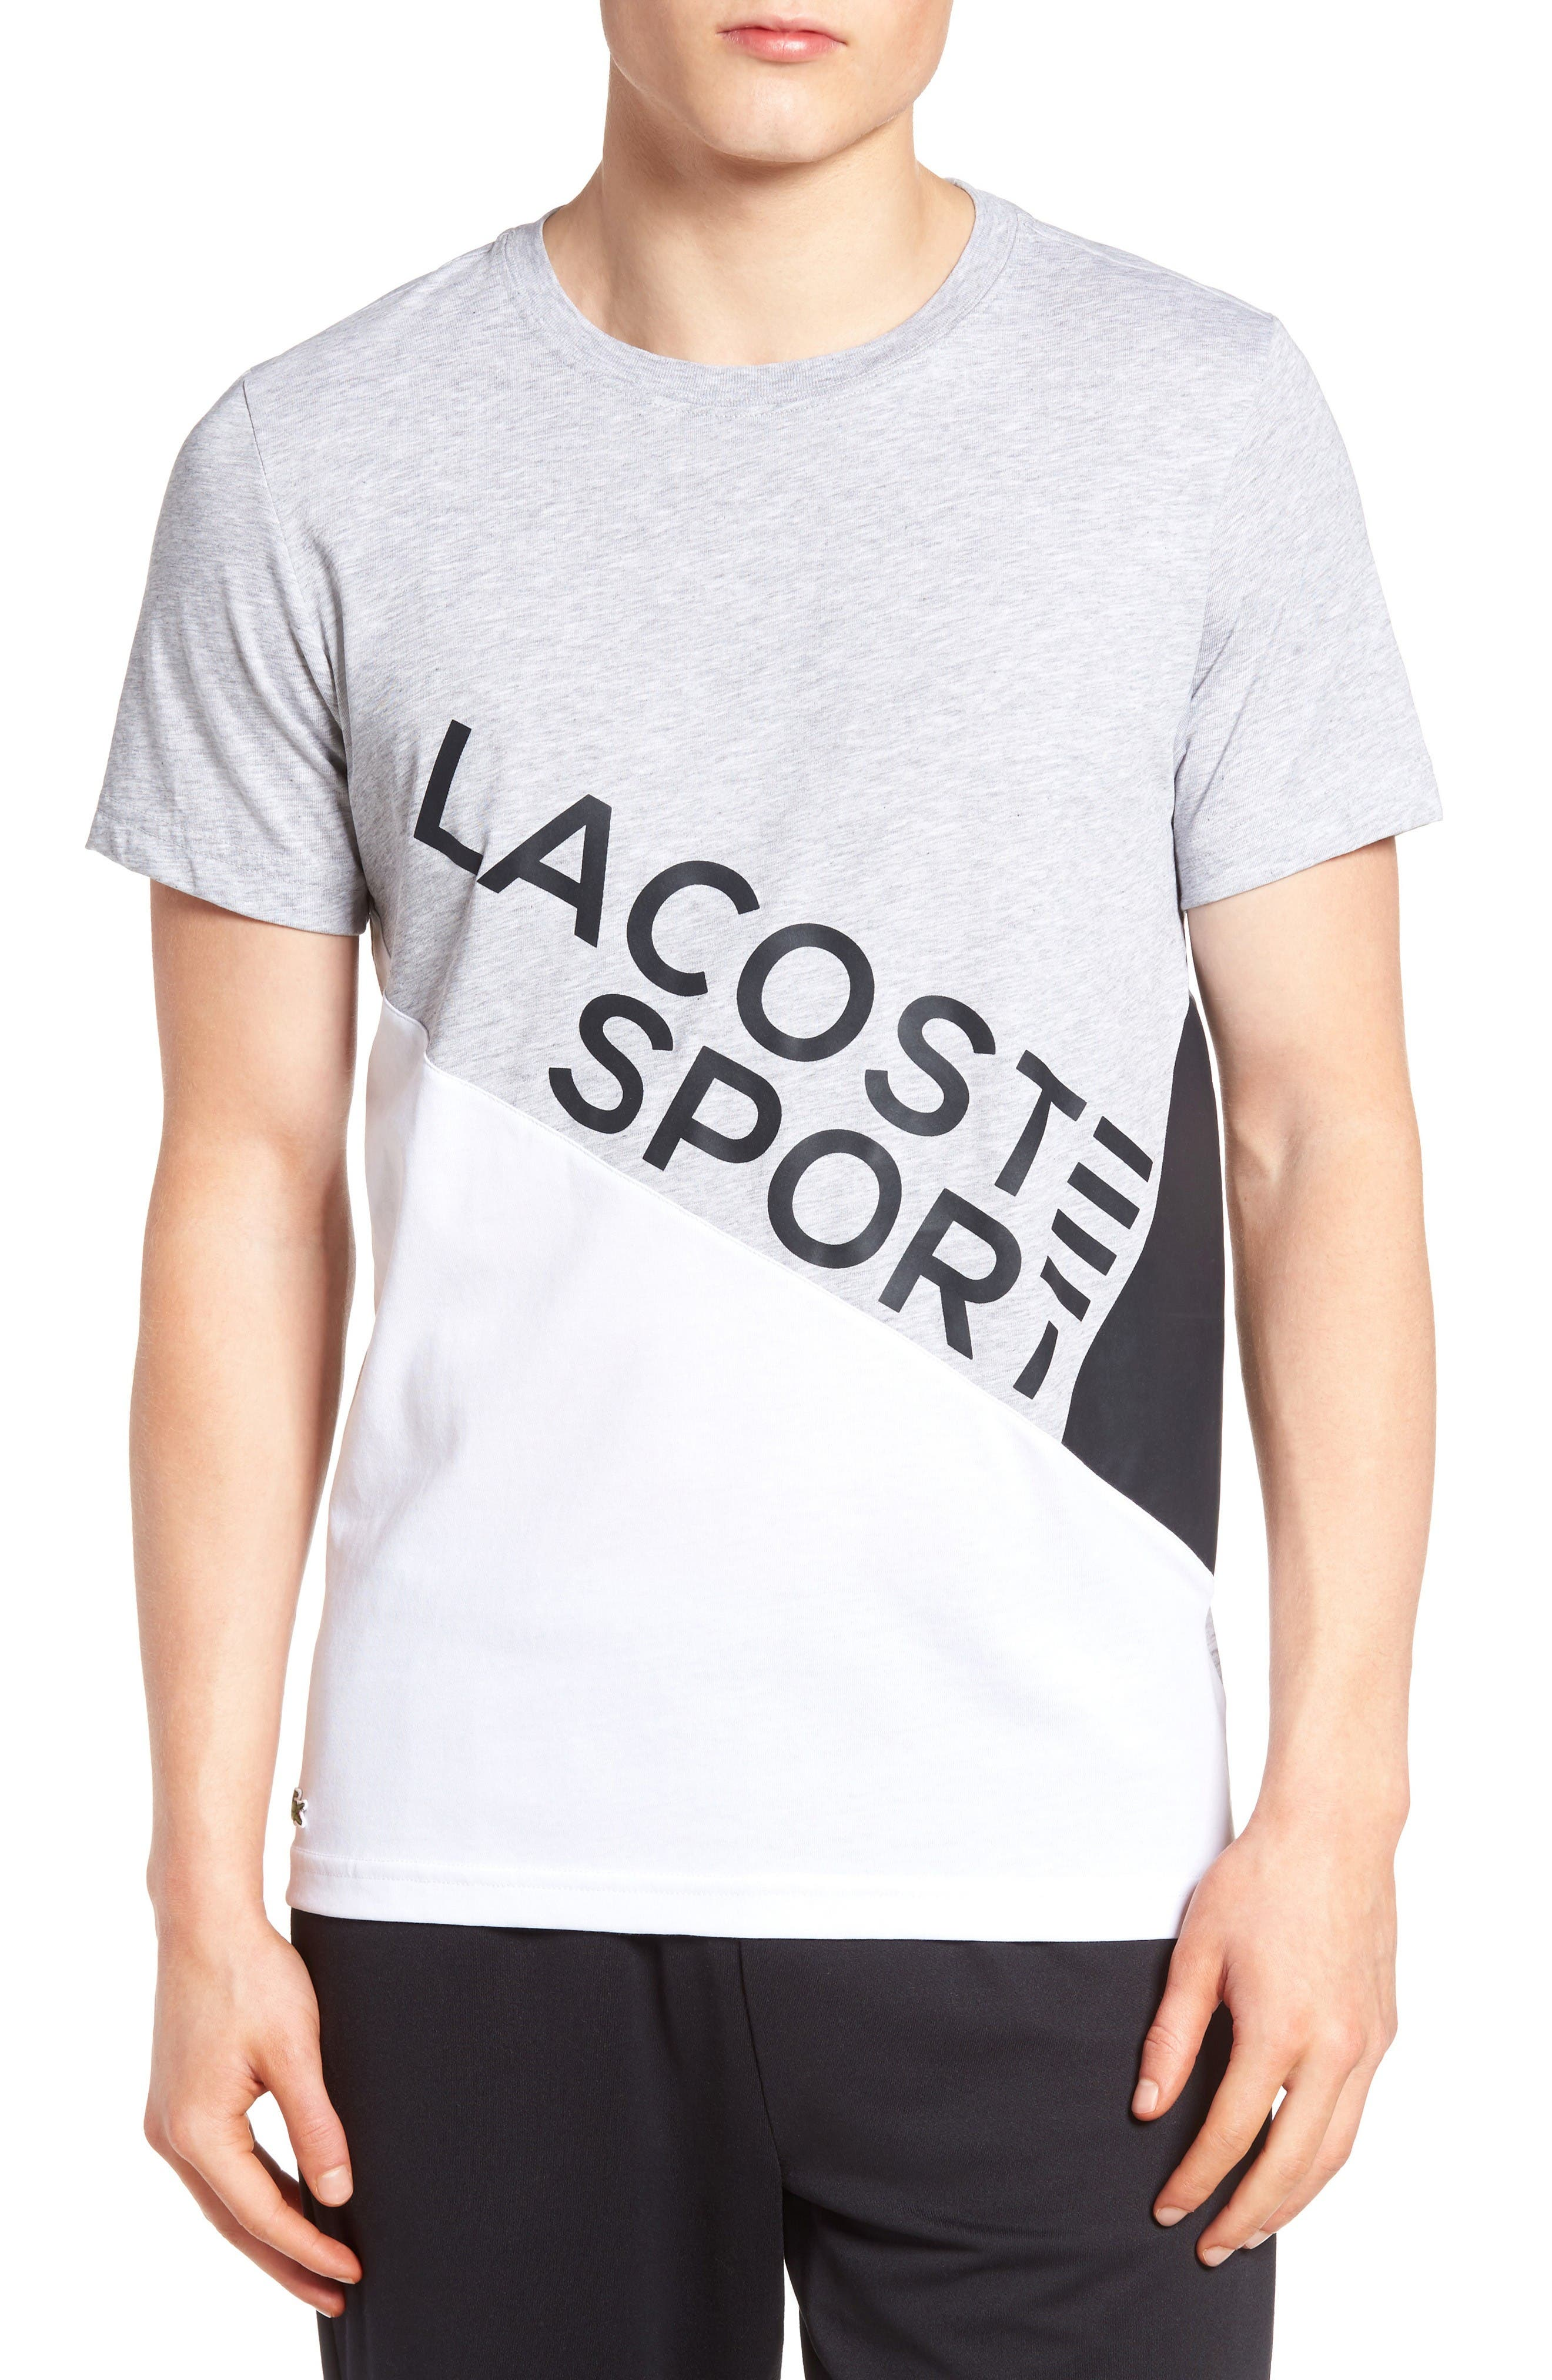 Lacoste Lifestyle Sport Graphic T-Shirt